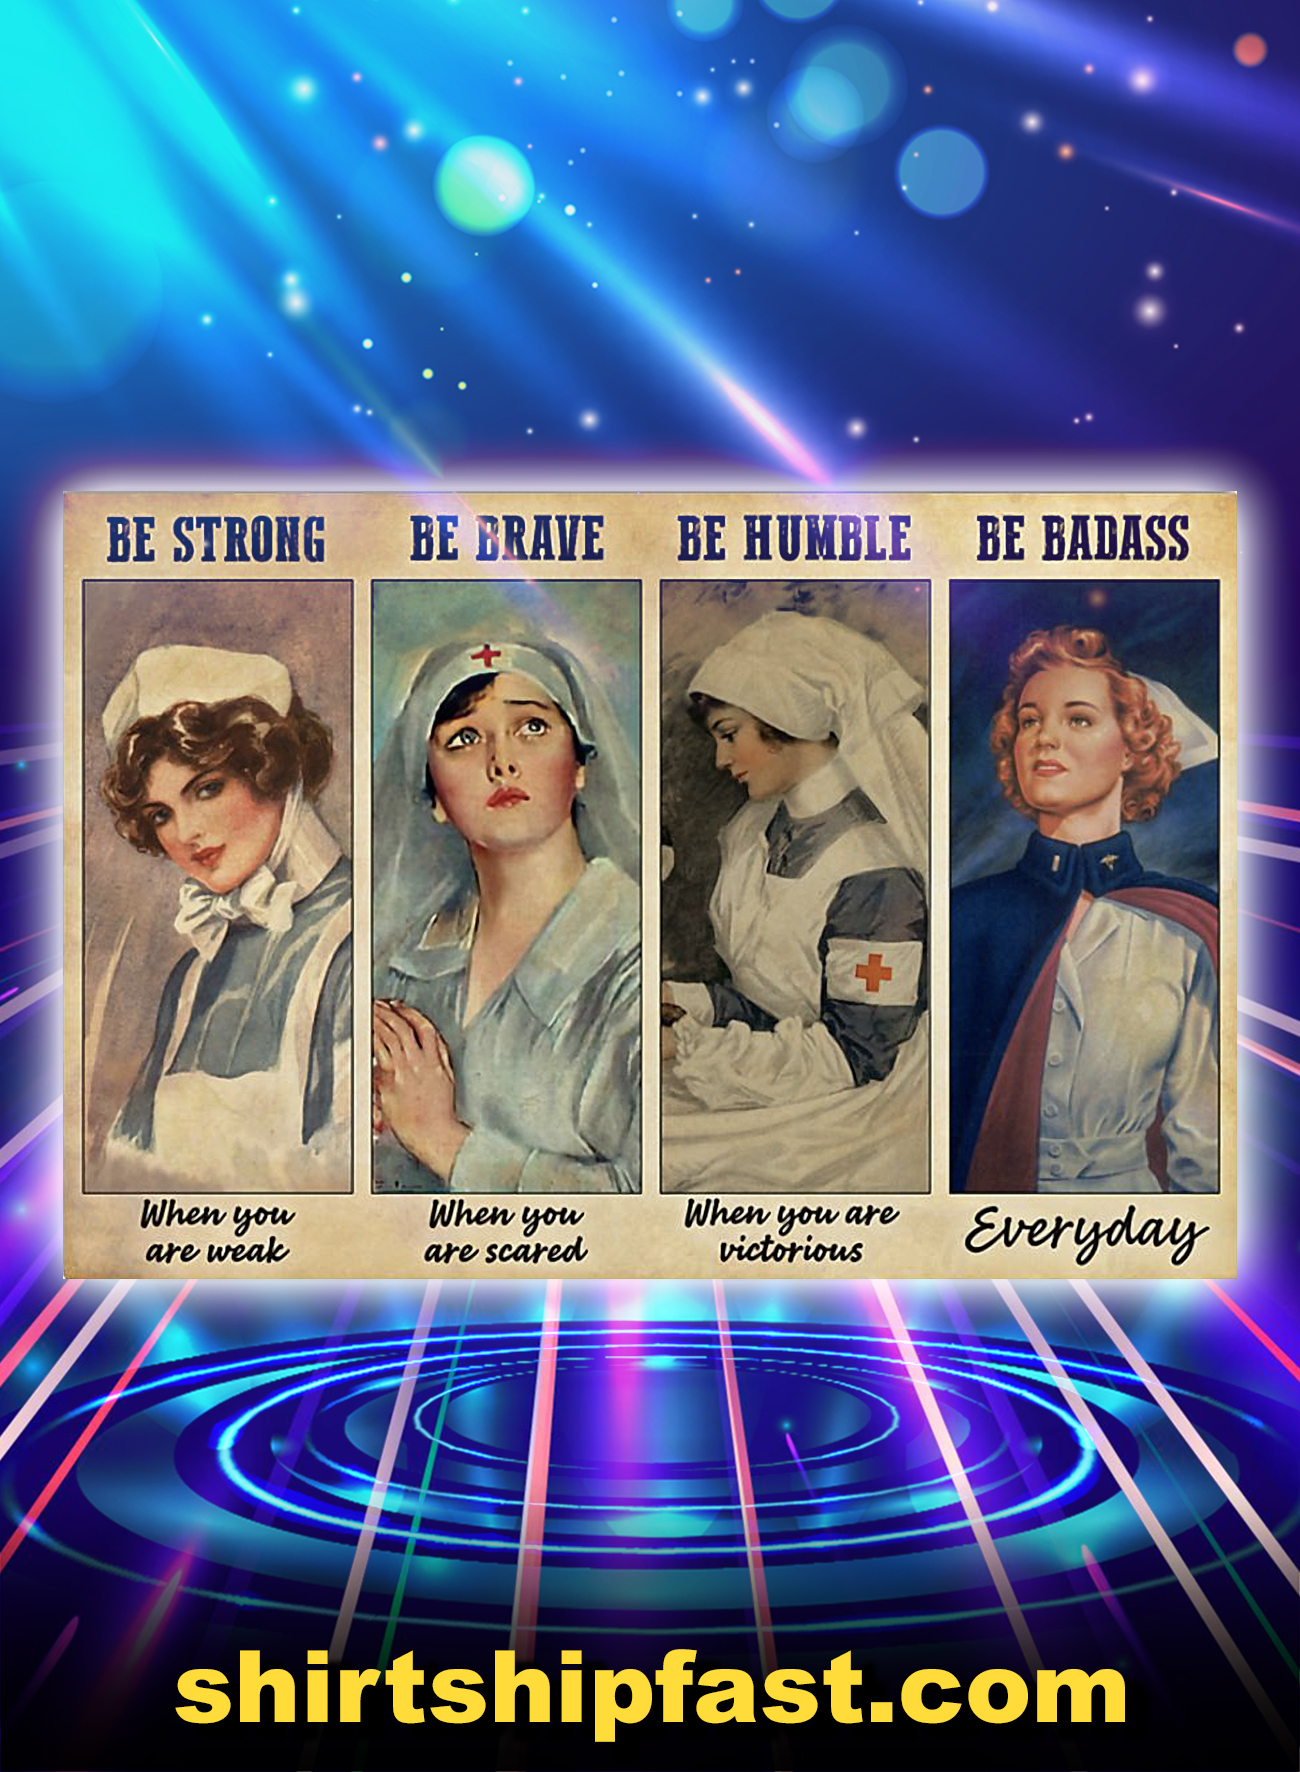 OFFICIAL NURSES BE STRONG BE BRAVE BE HUMBLE BE BADASS POSTER - A4